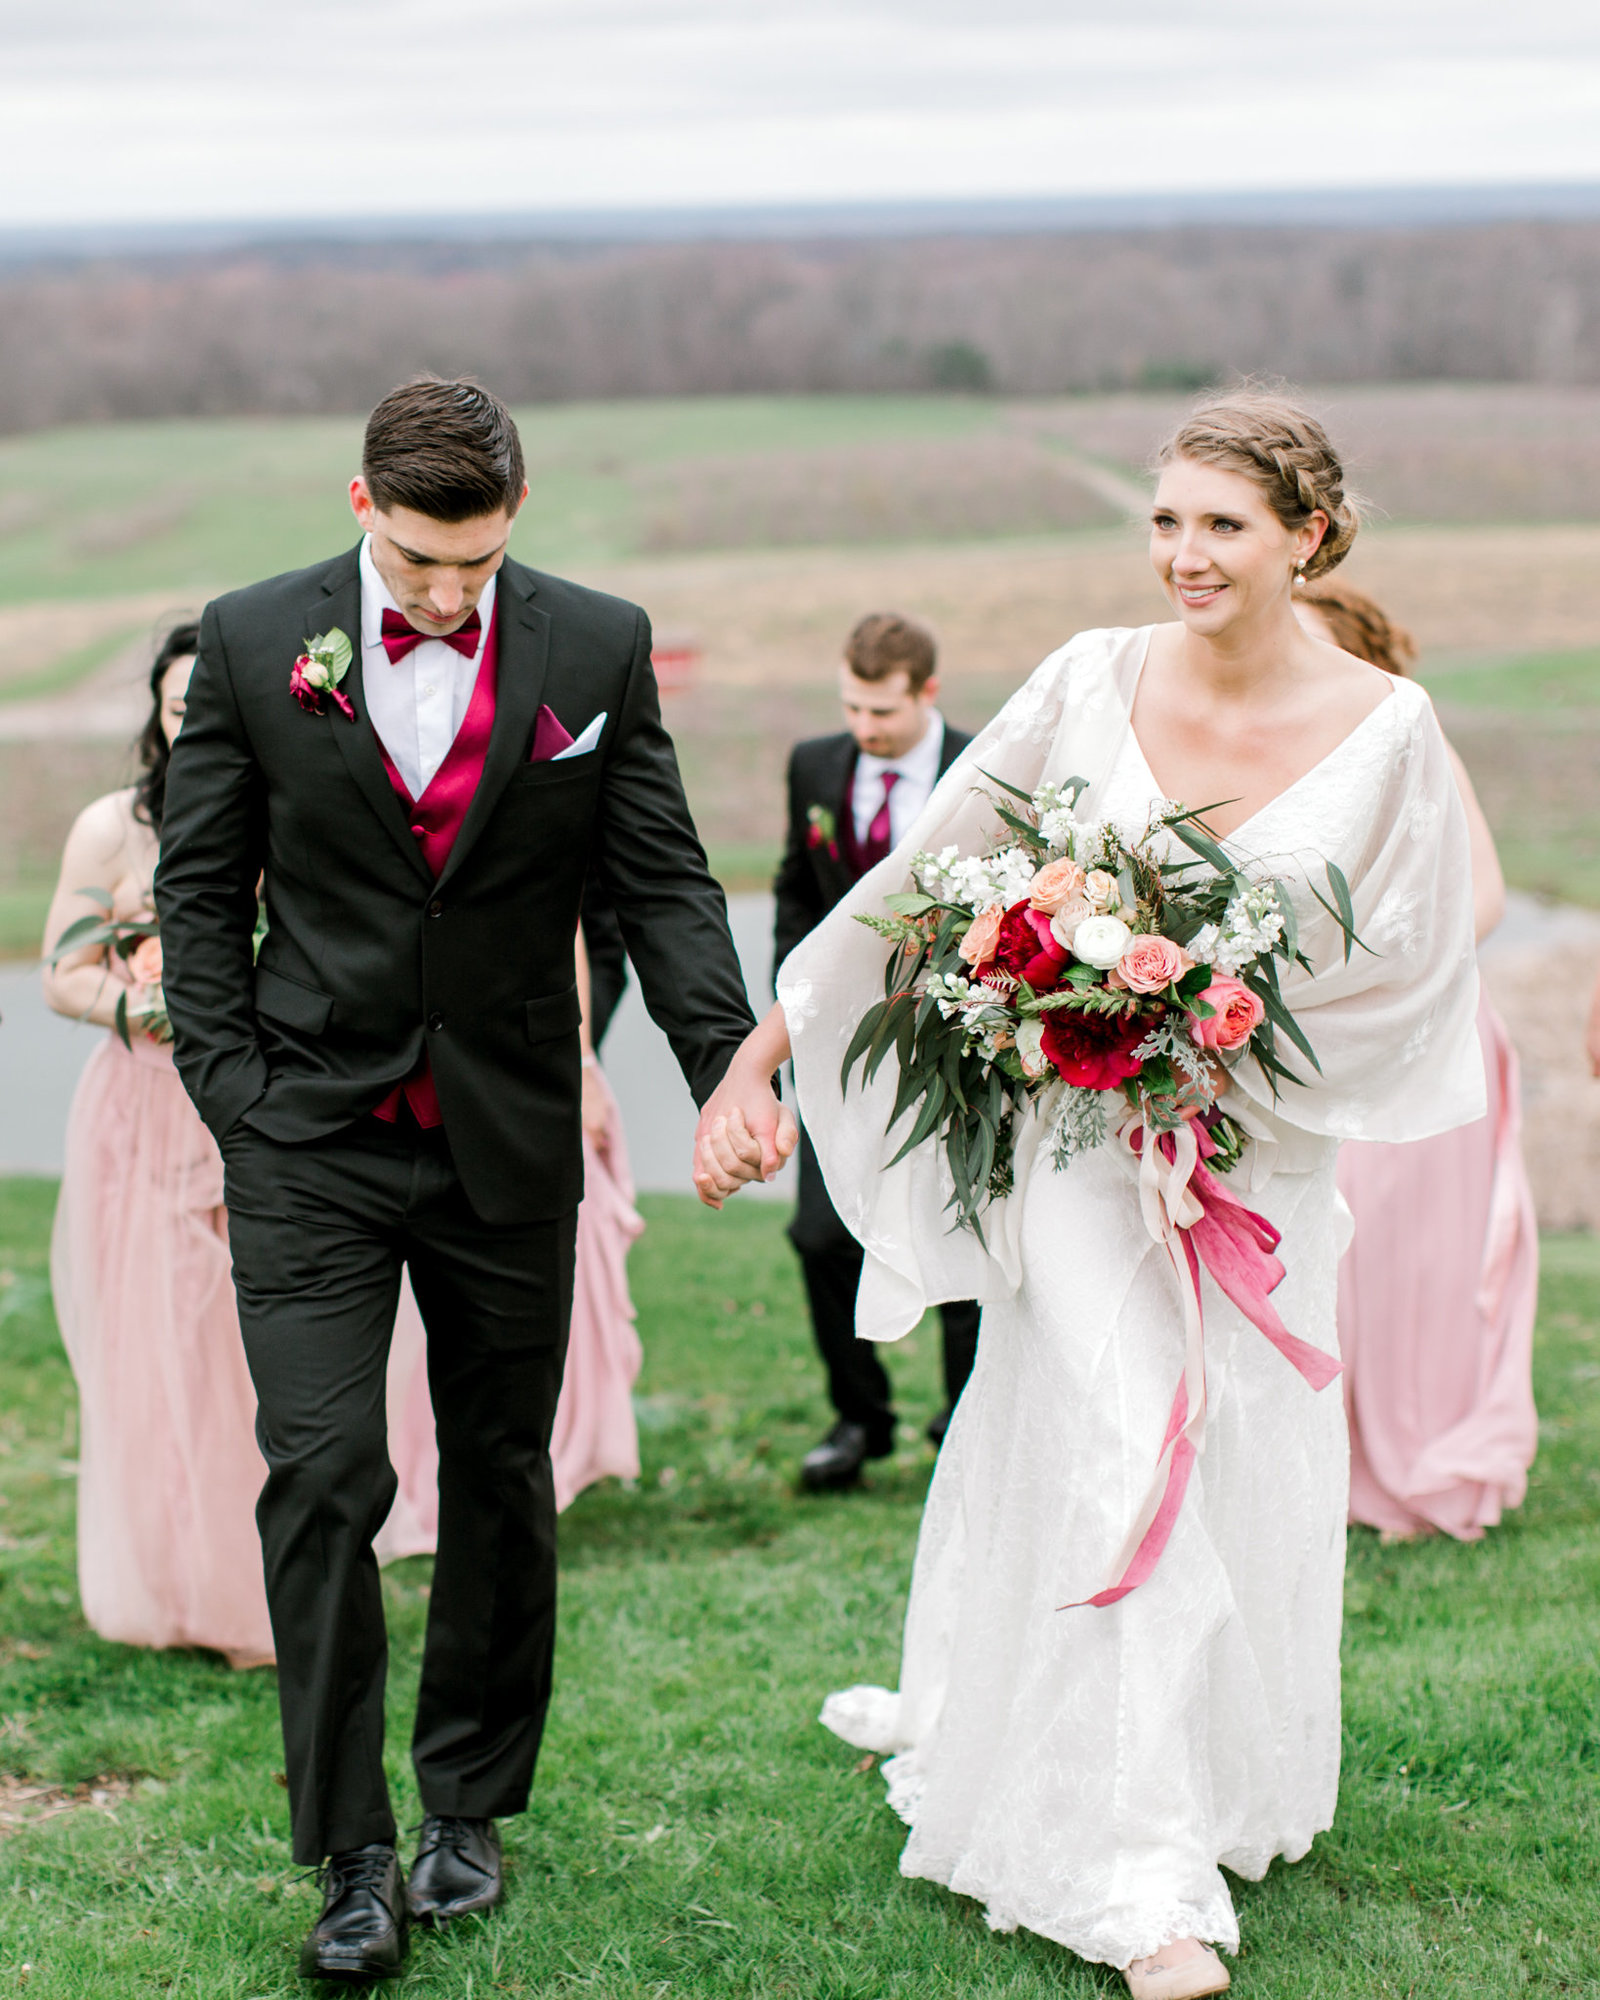 cleveland wedding photographers Austin and rachel -9571